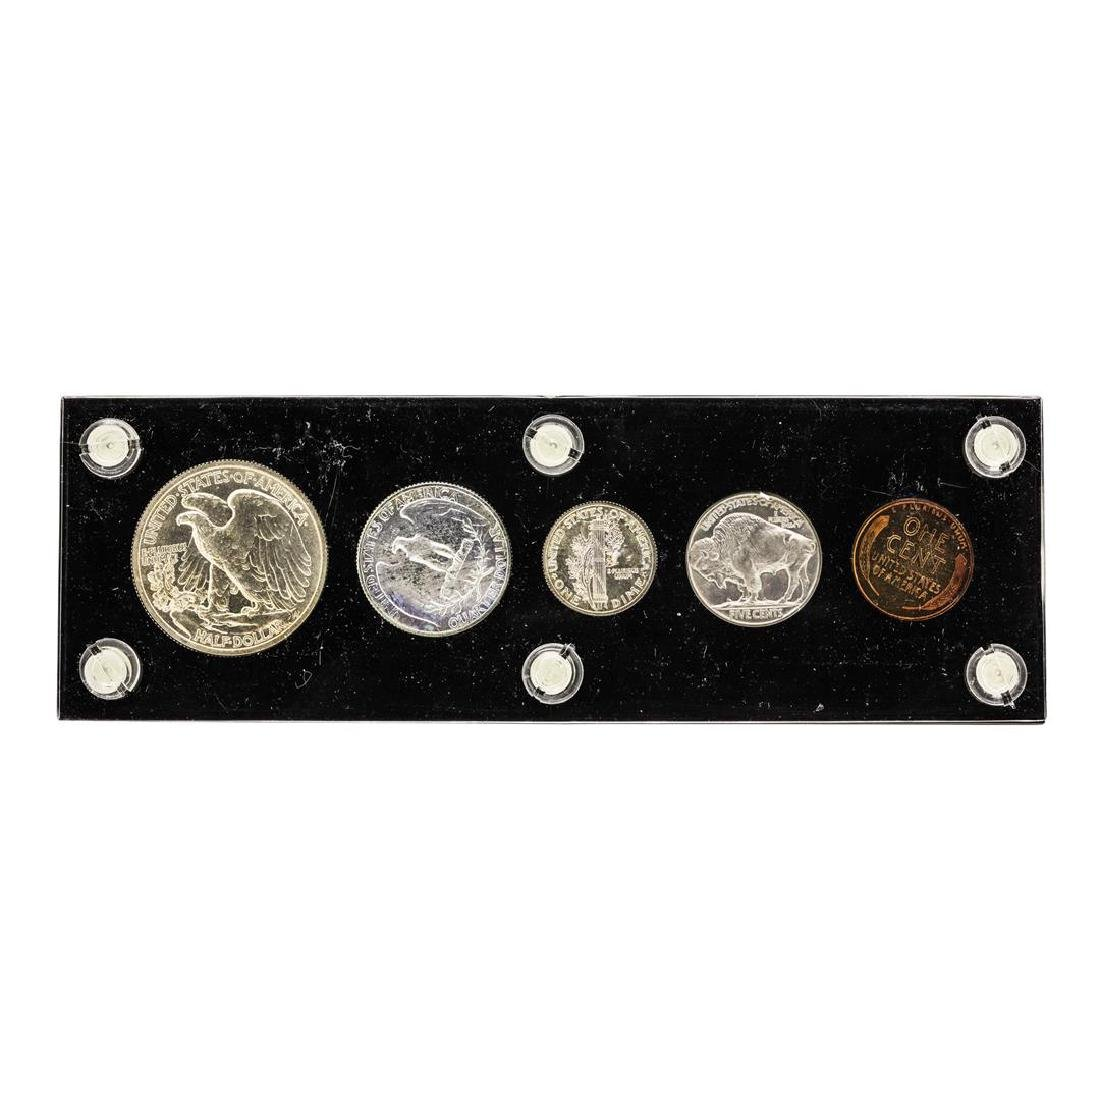 1936 (5) Coin Proof Set - 2